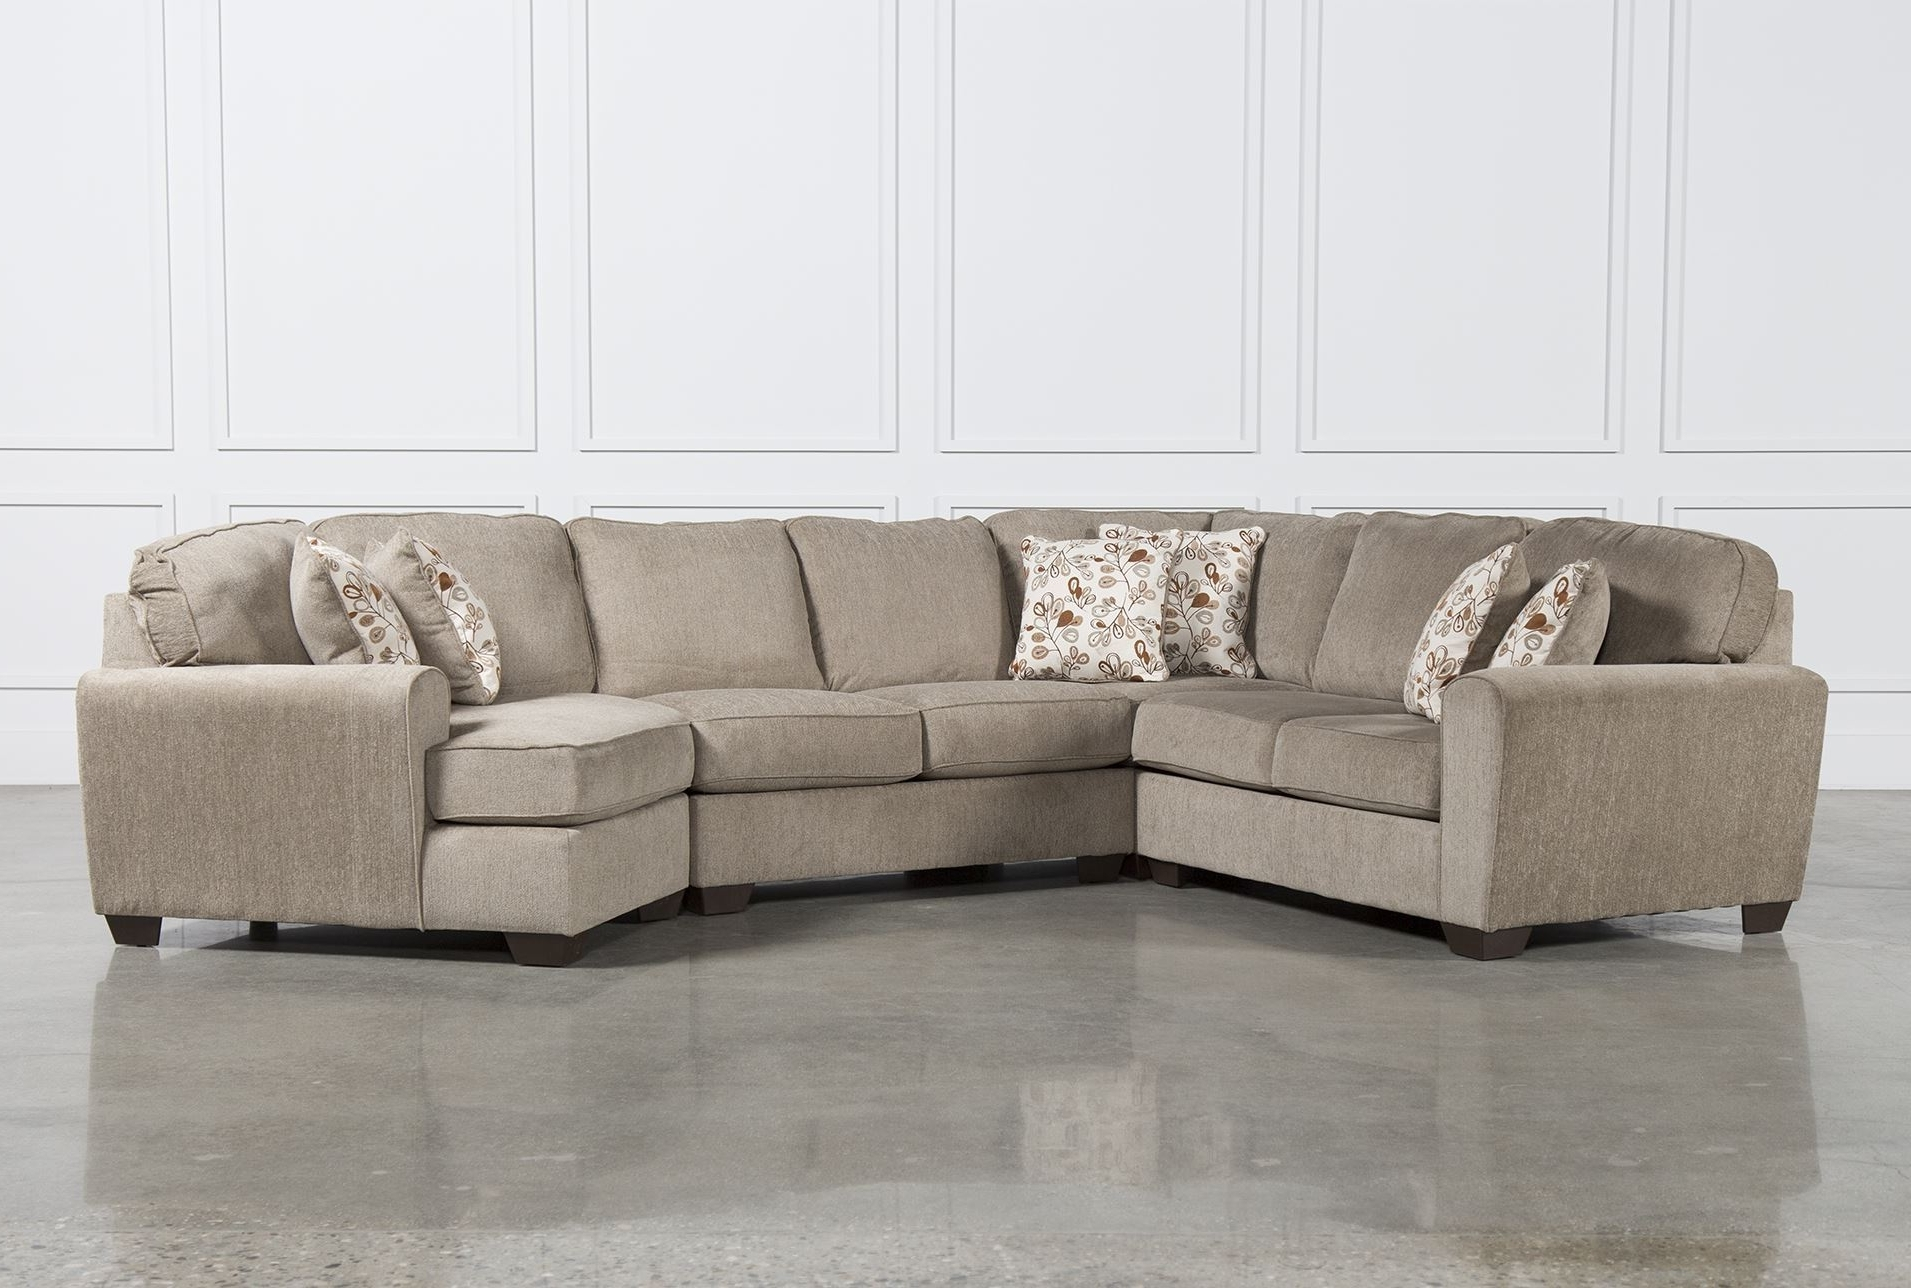 Havertys Sectional Sofa With Regard To Well Known Havertys Sectional Sofas (View 5 of 20)